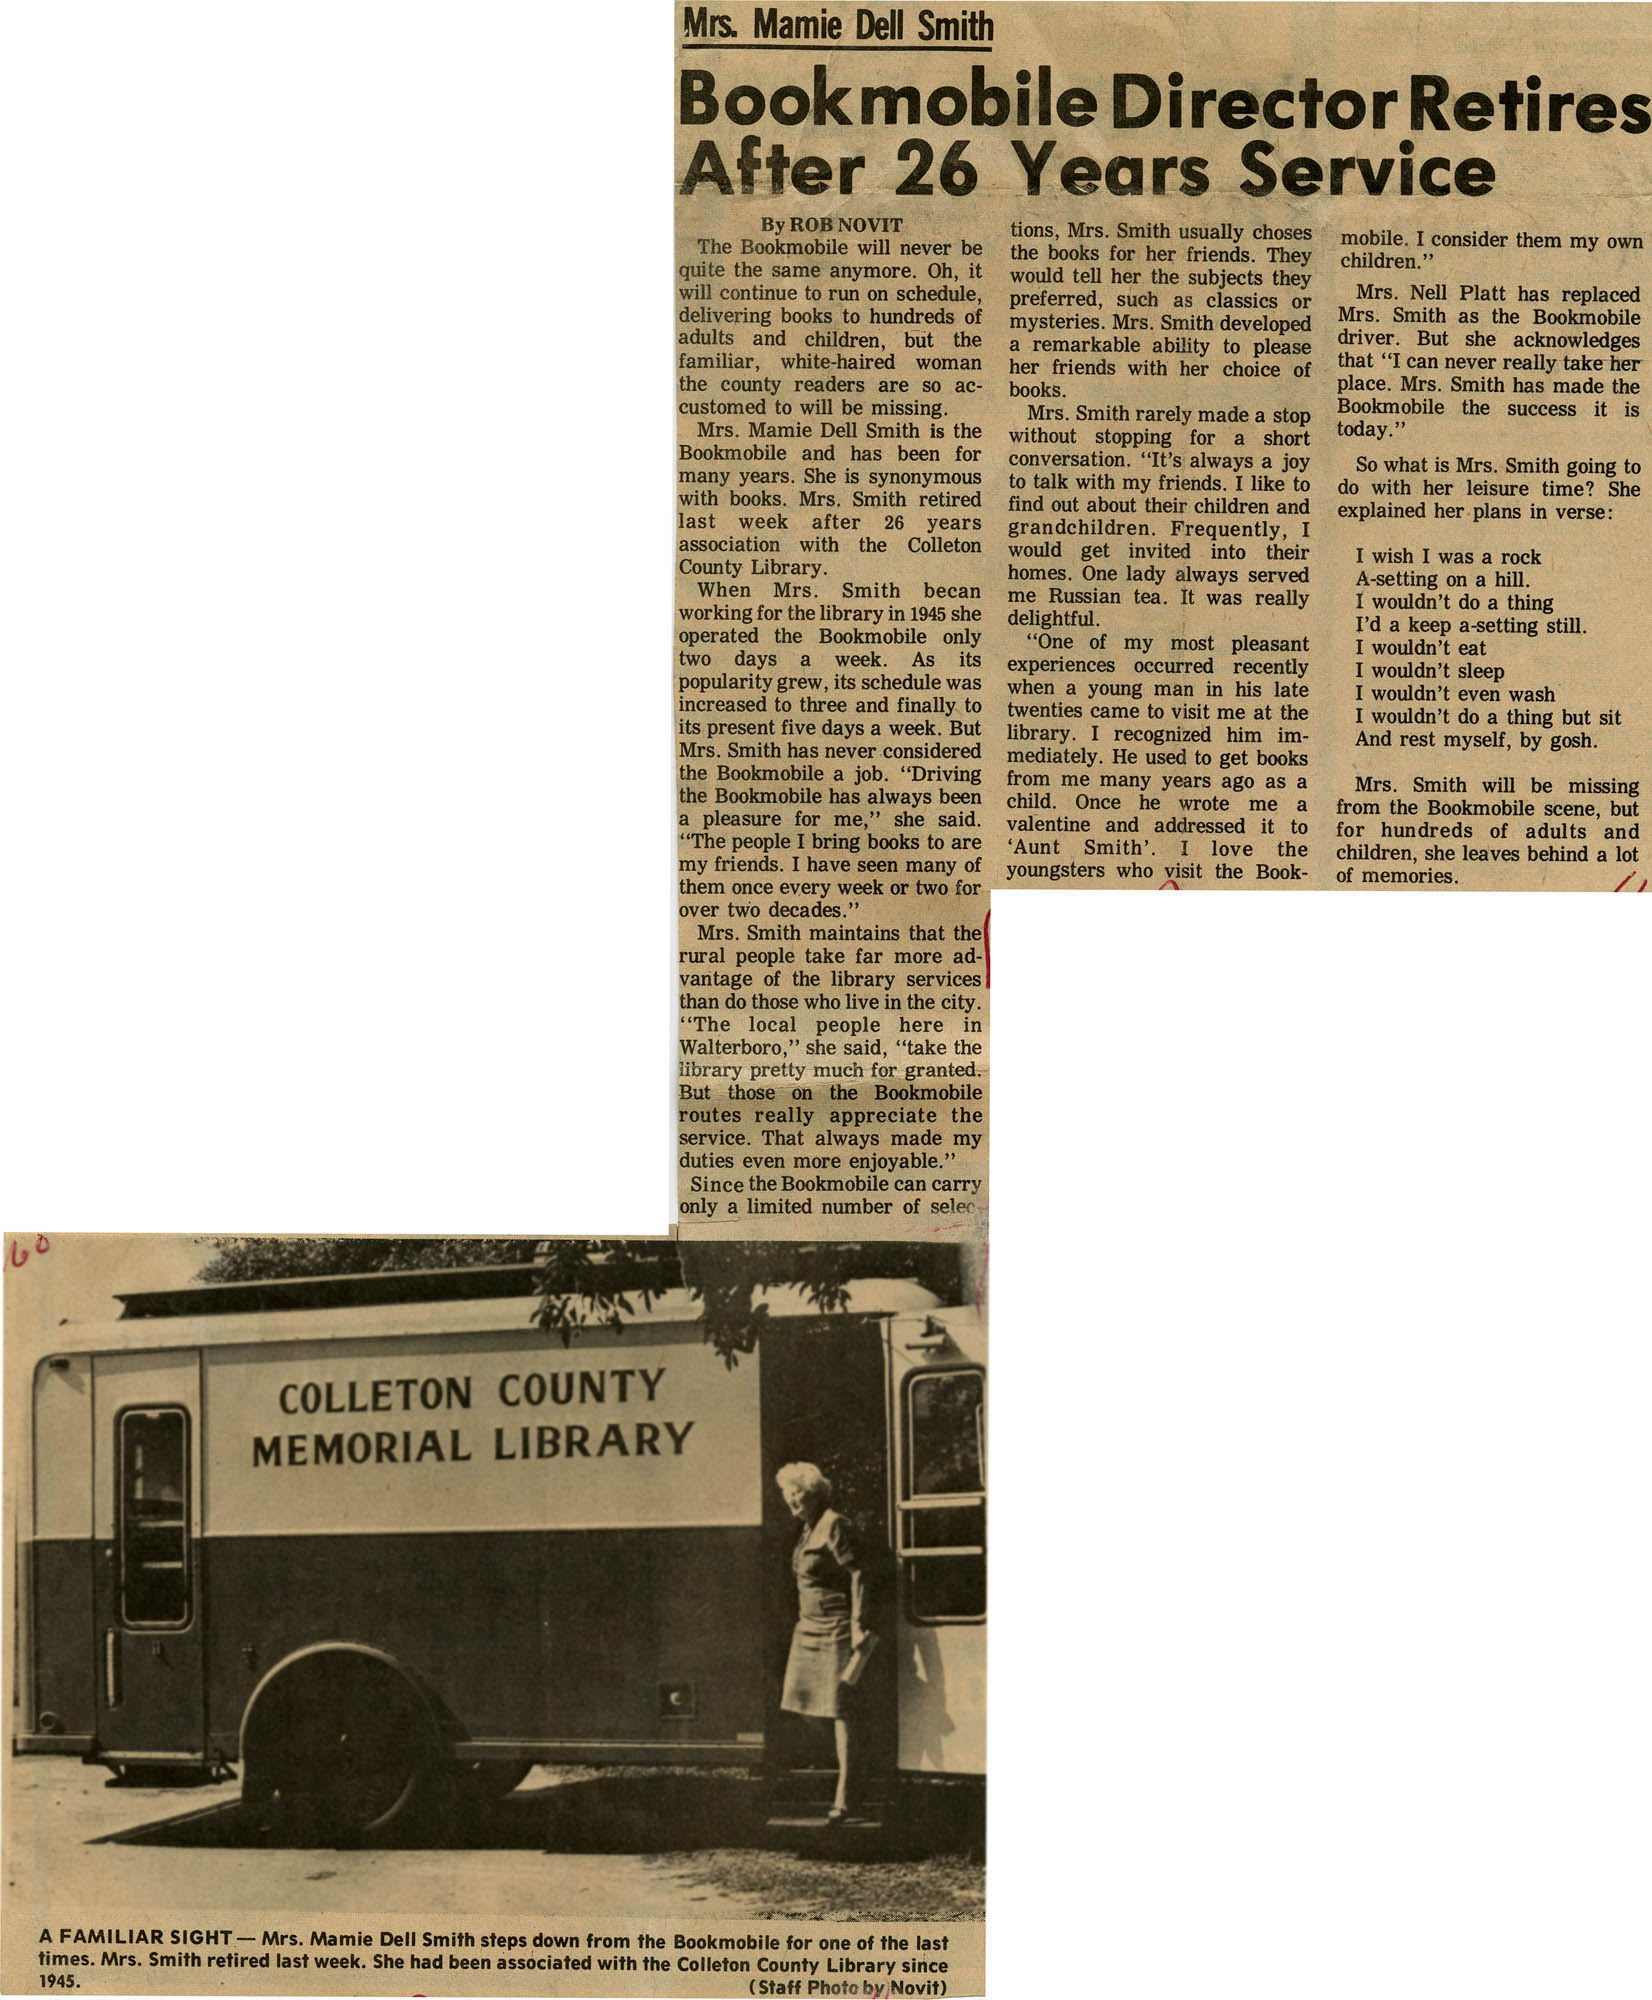 Bookmobile Director Retires After 26 Years of Service